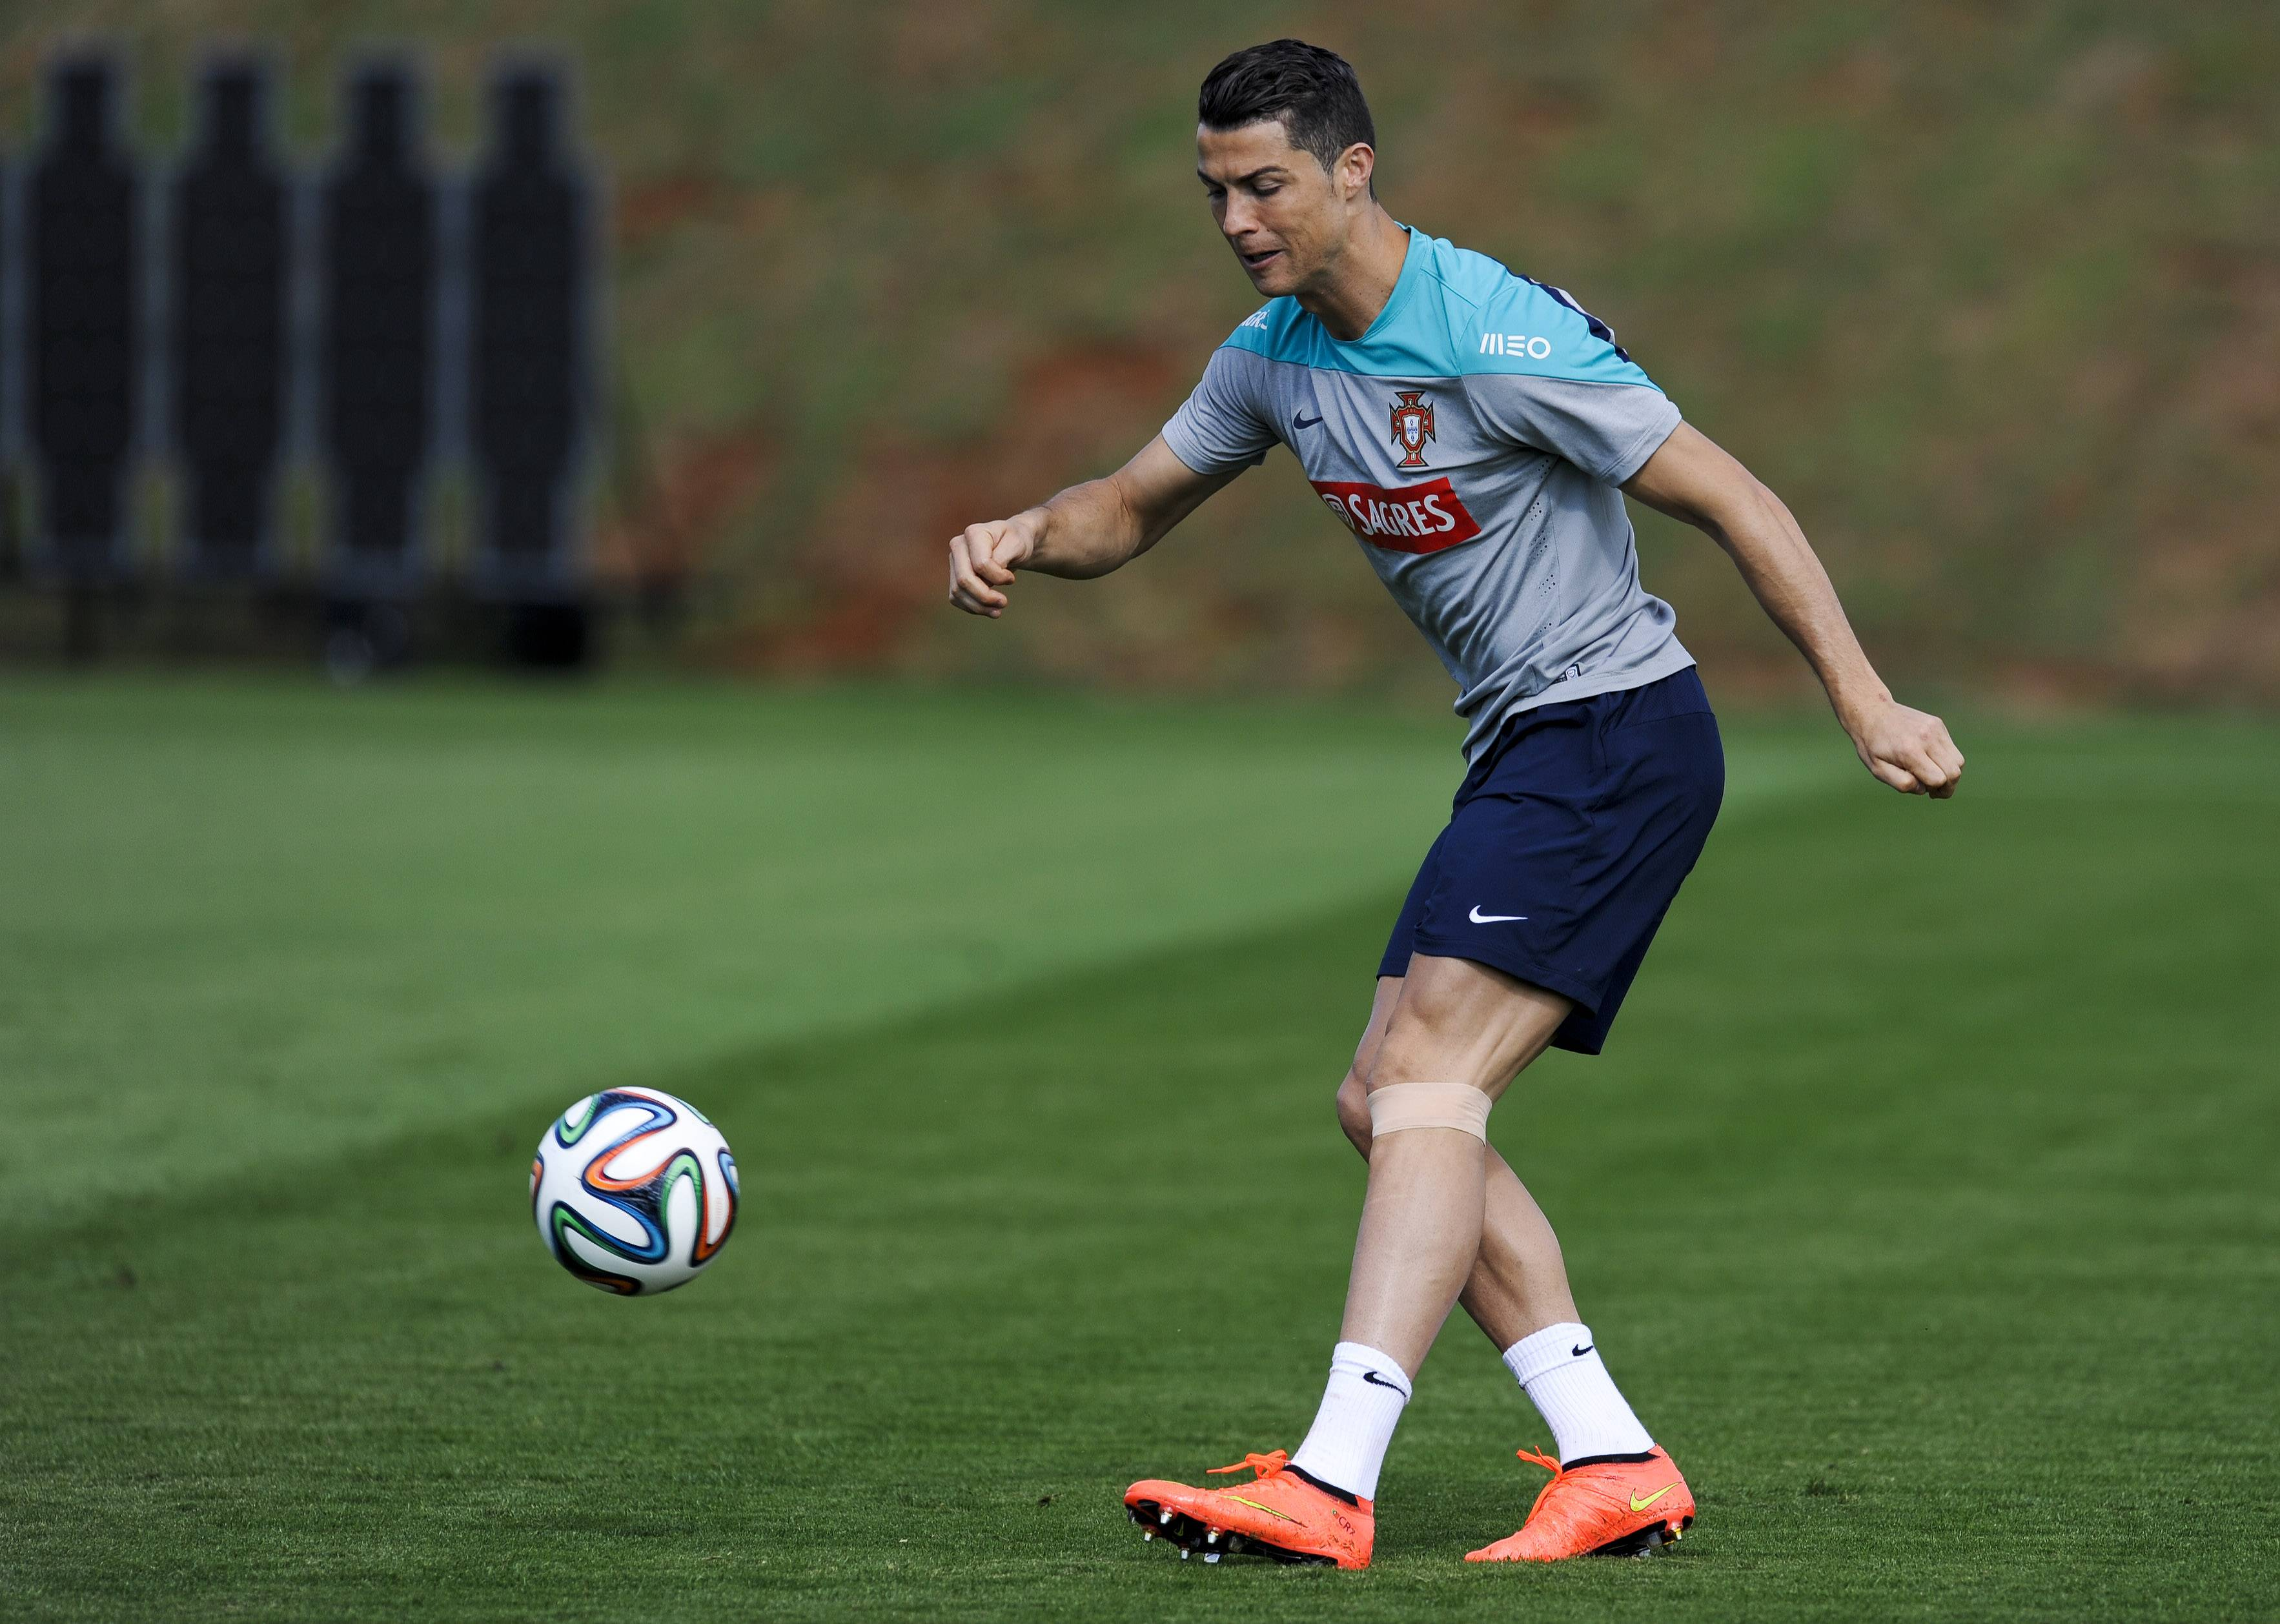 Portugal's Cristiano Ronaldo has been carrying an injury to his left knee, and the world player of the year was seen using an ice pack on it during training on Wednesday. But he is still expected to play against the Americans on Sunday.